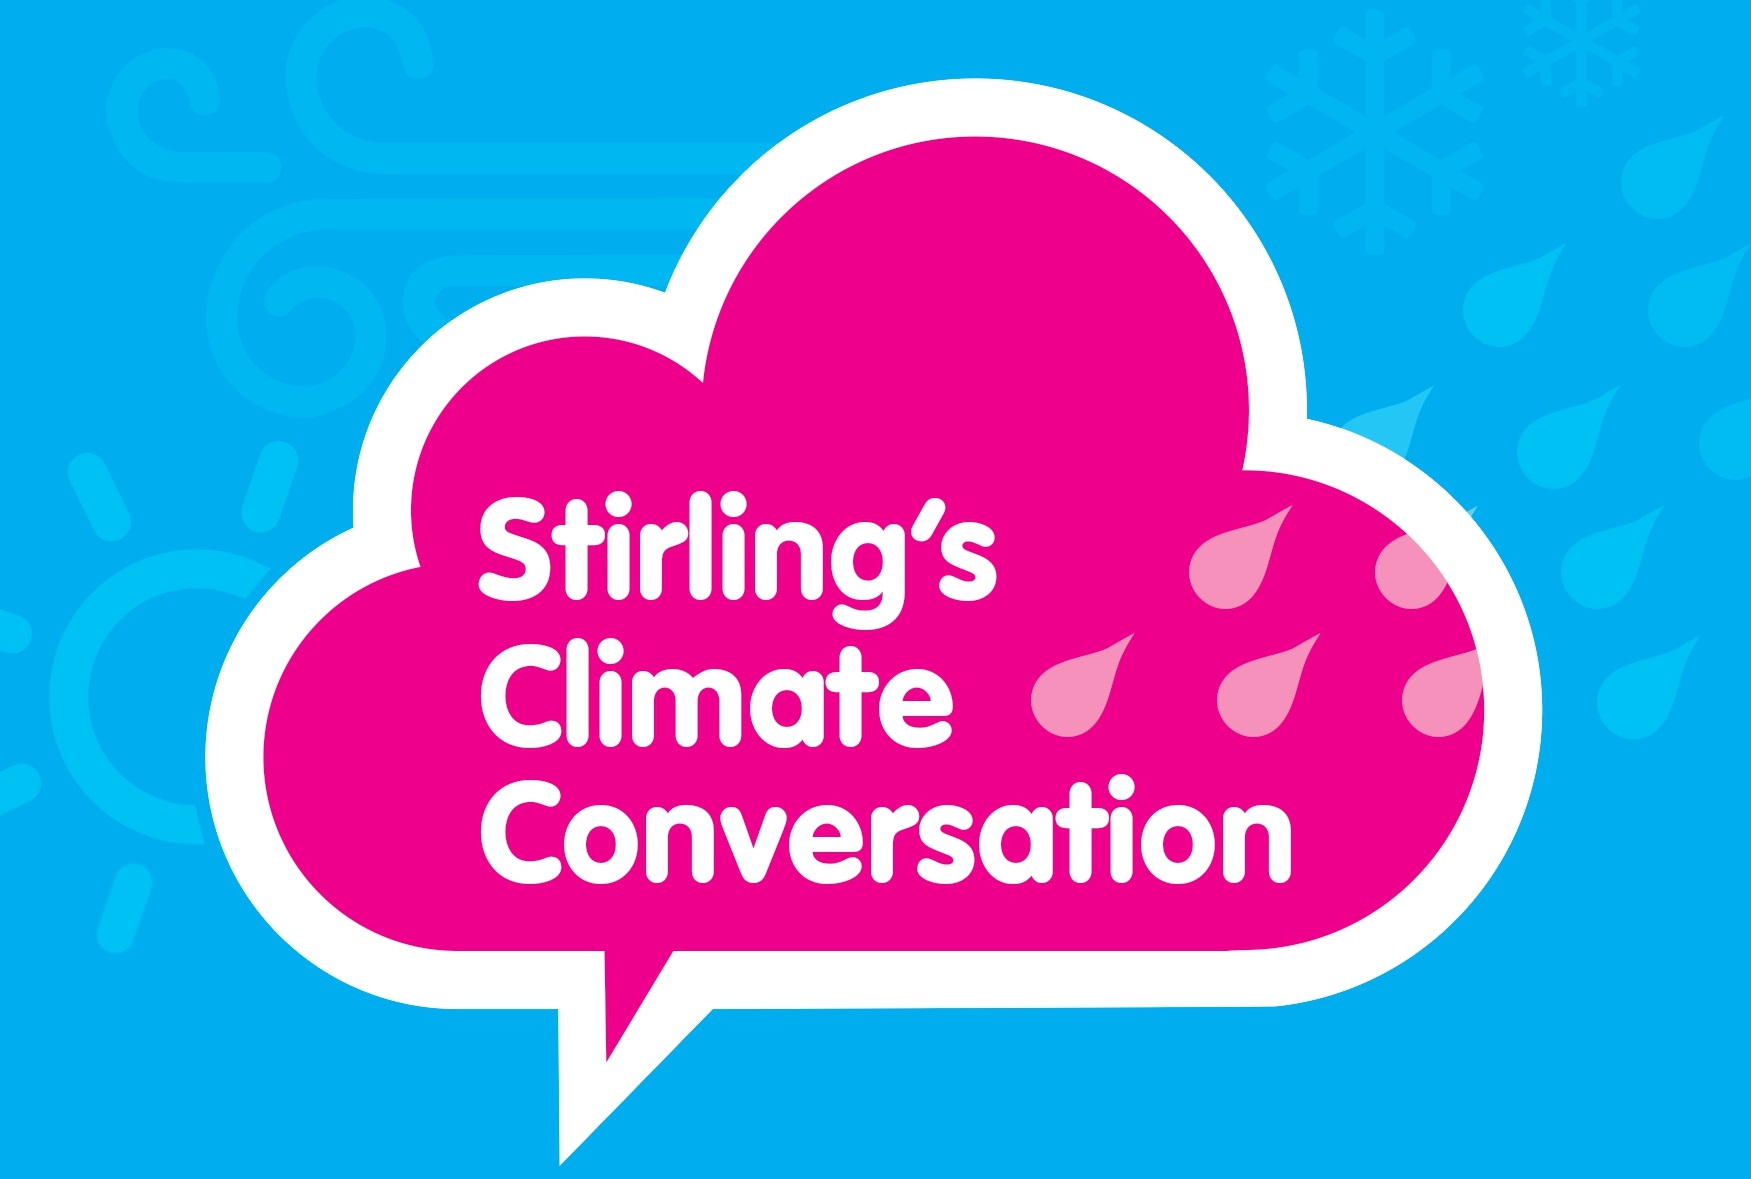 The main logo promoting Stirling's Climate Conversation